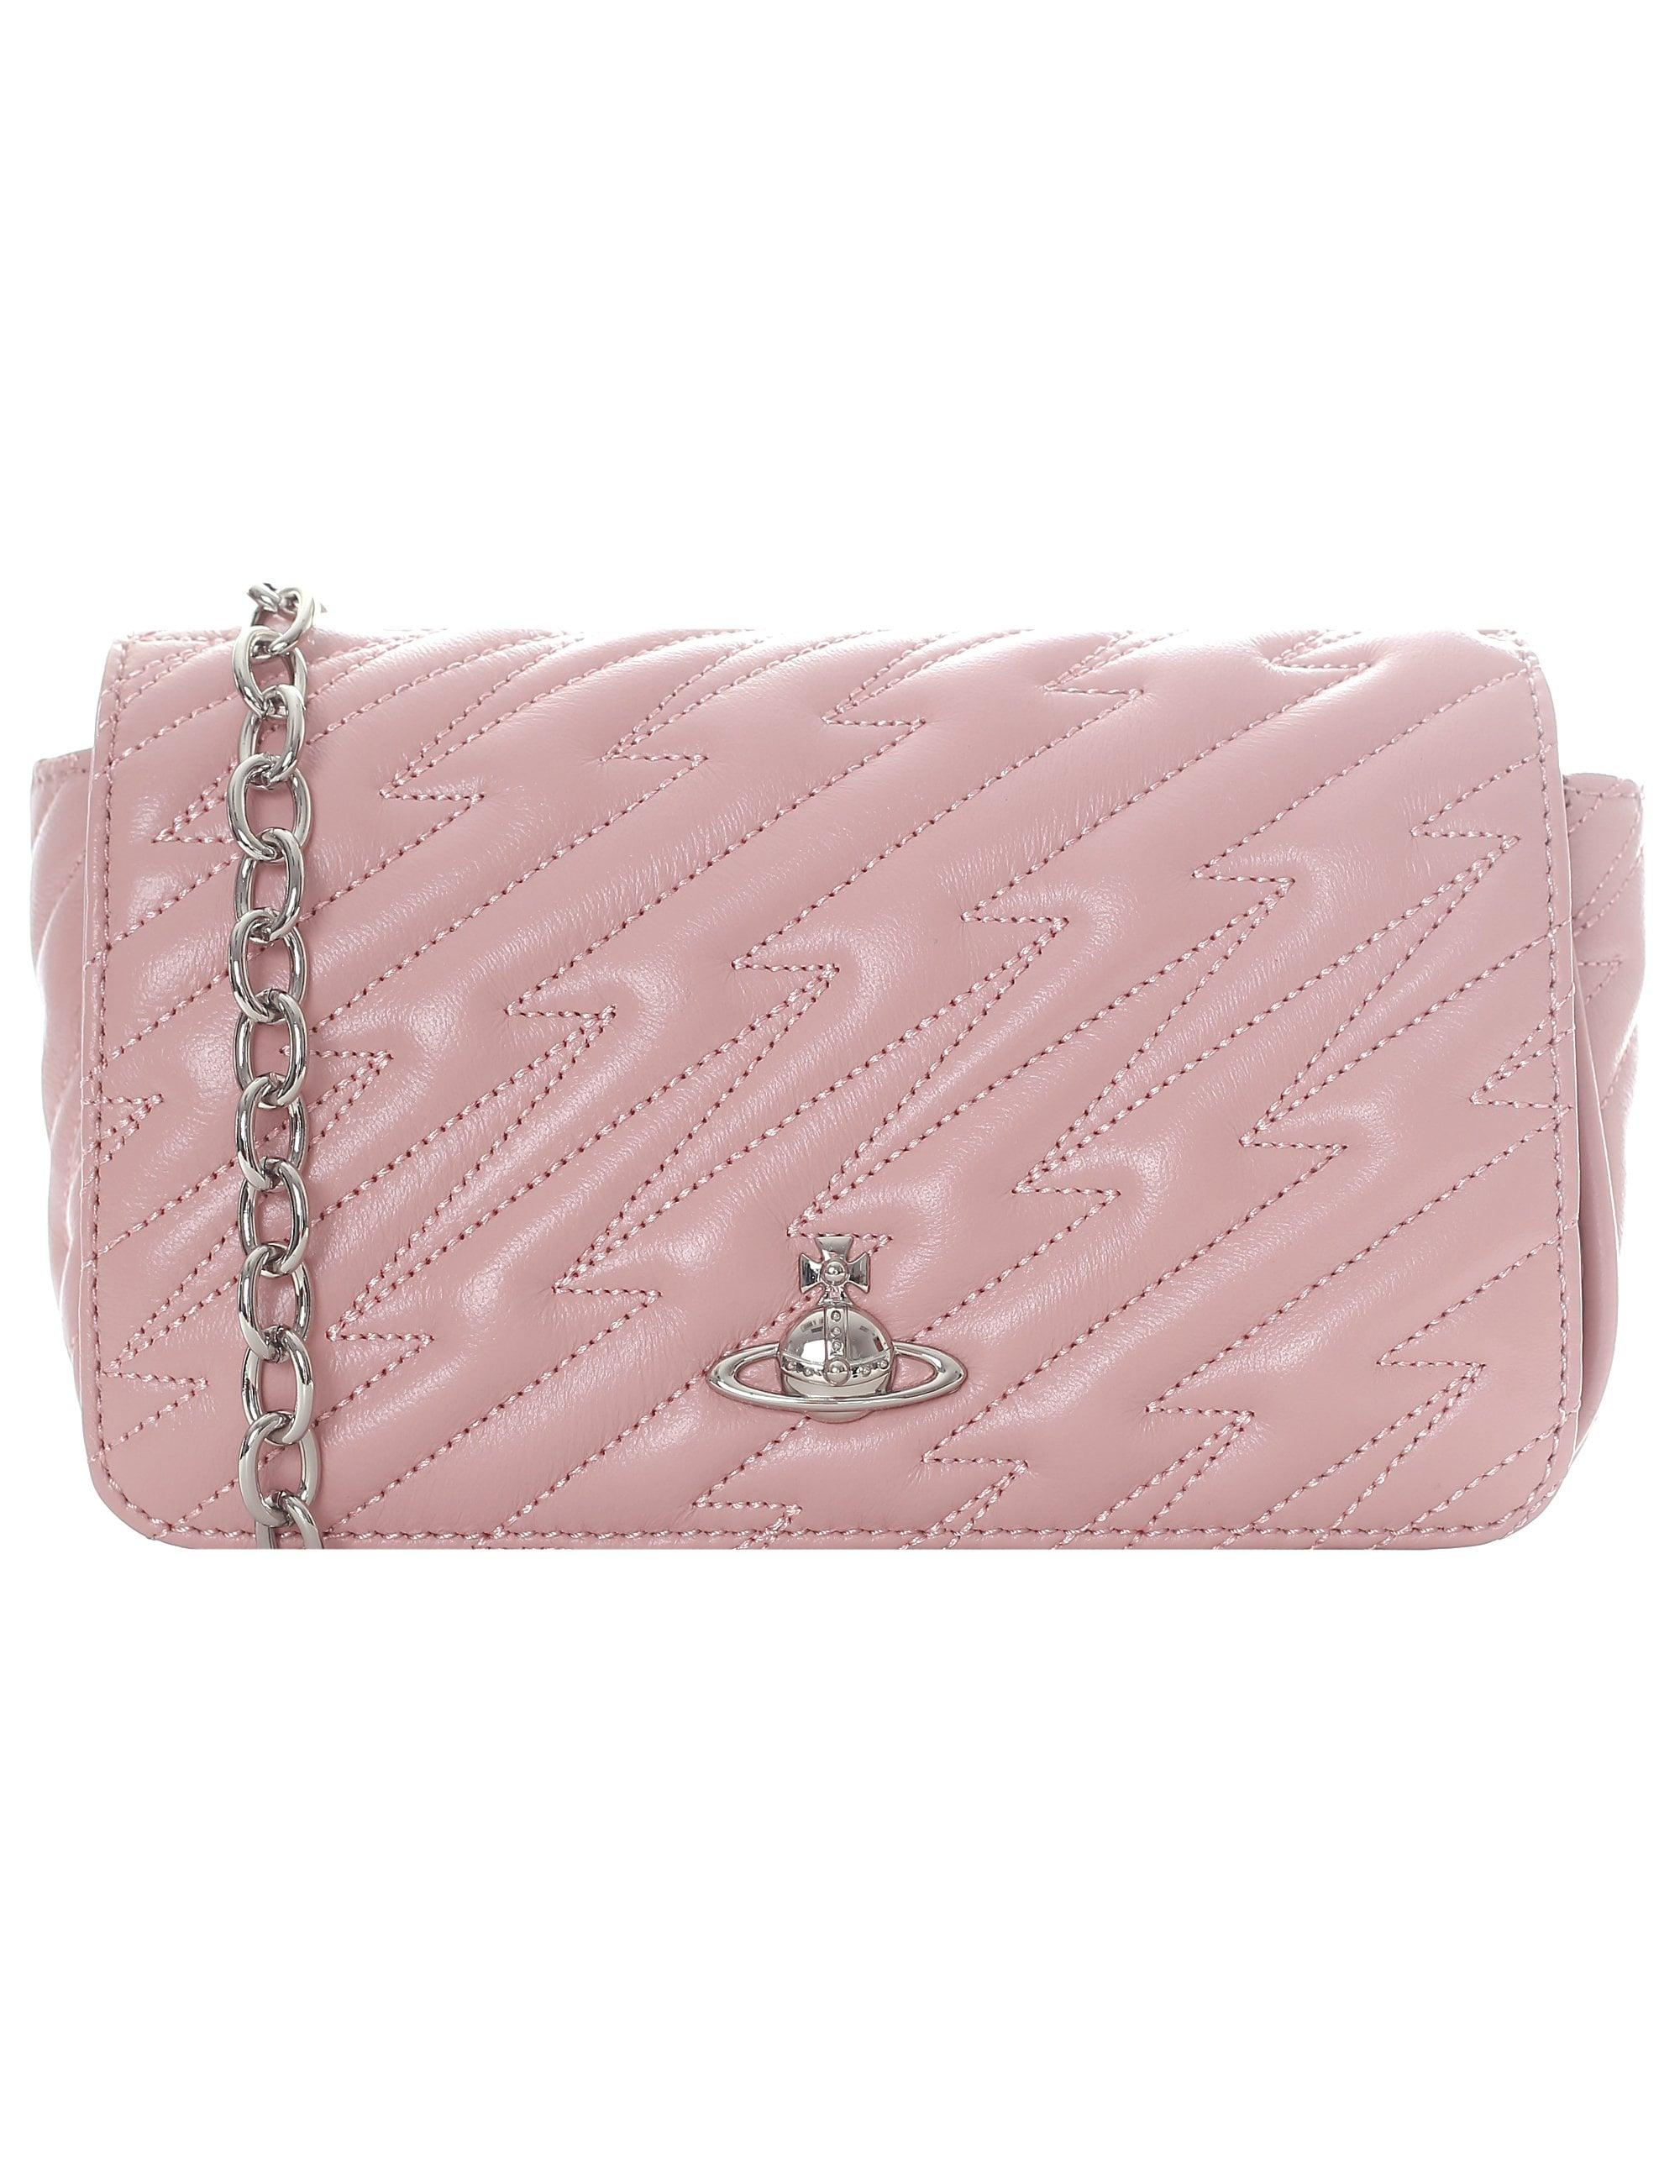 2f70c199f1f Vivienne Westwood Women's Coventry Mini Crossbody in Pink - Lyst